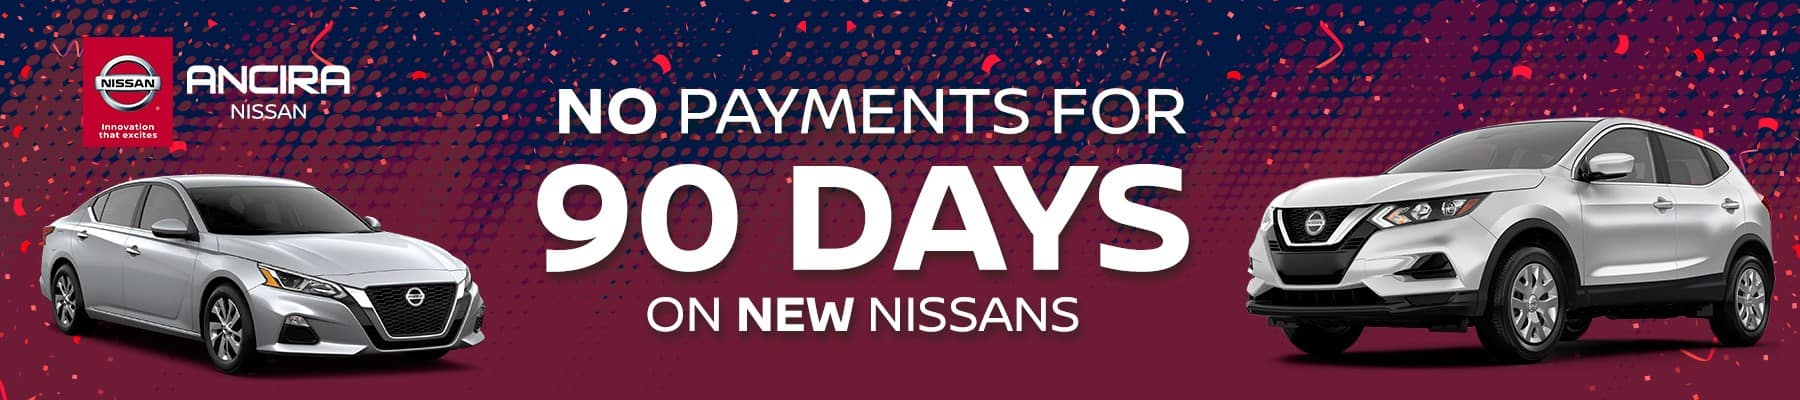 No Payments for 90 Days San Antonio Ancira Nissan